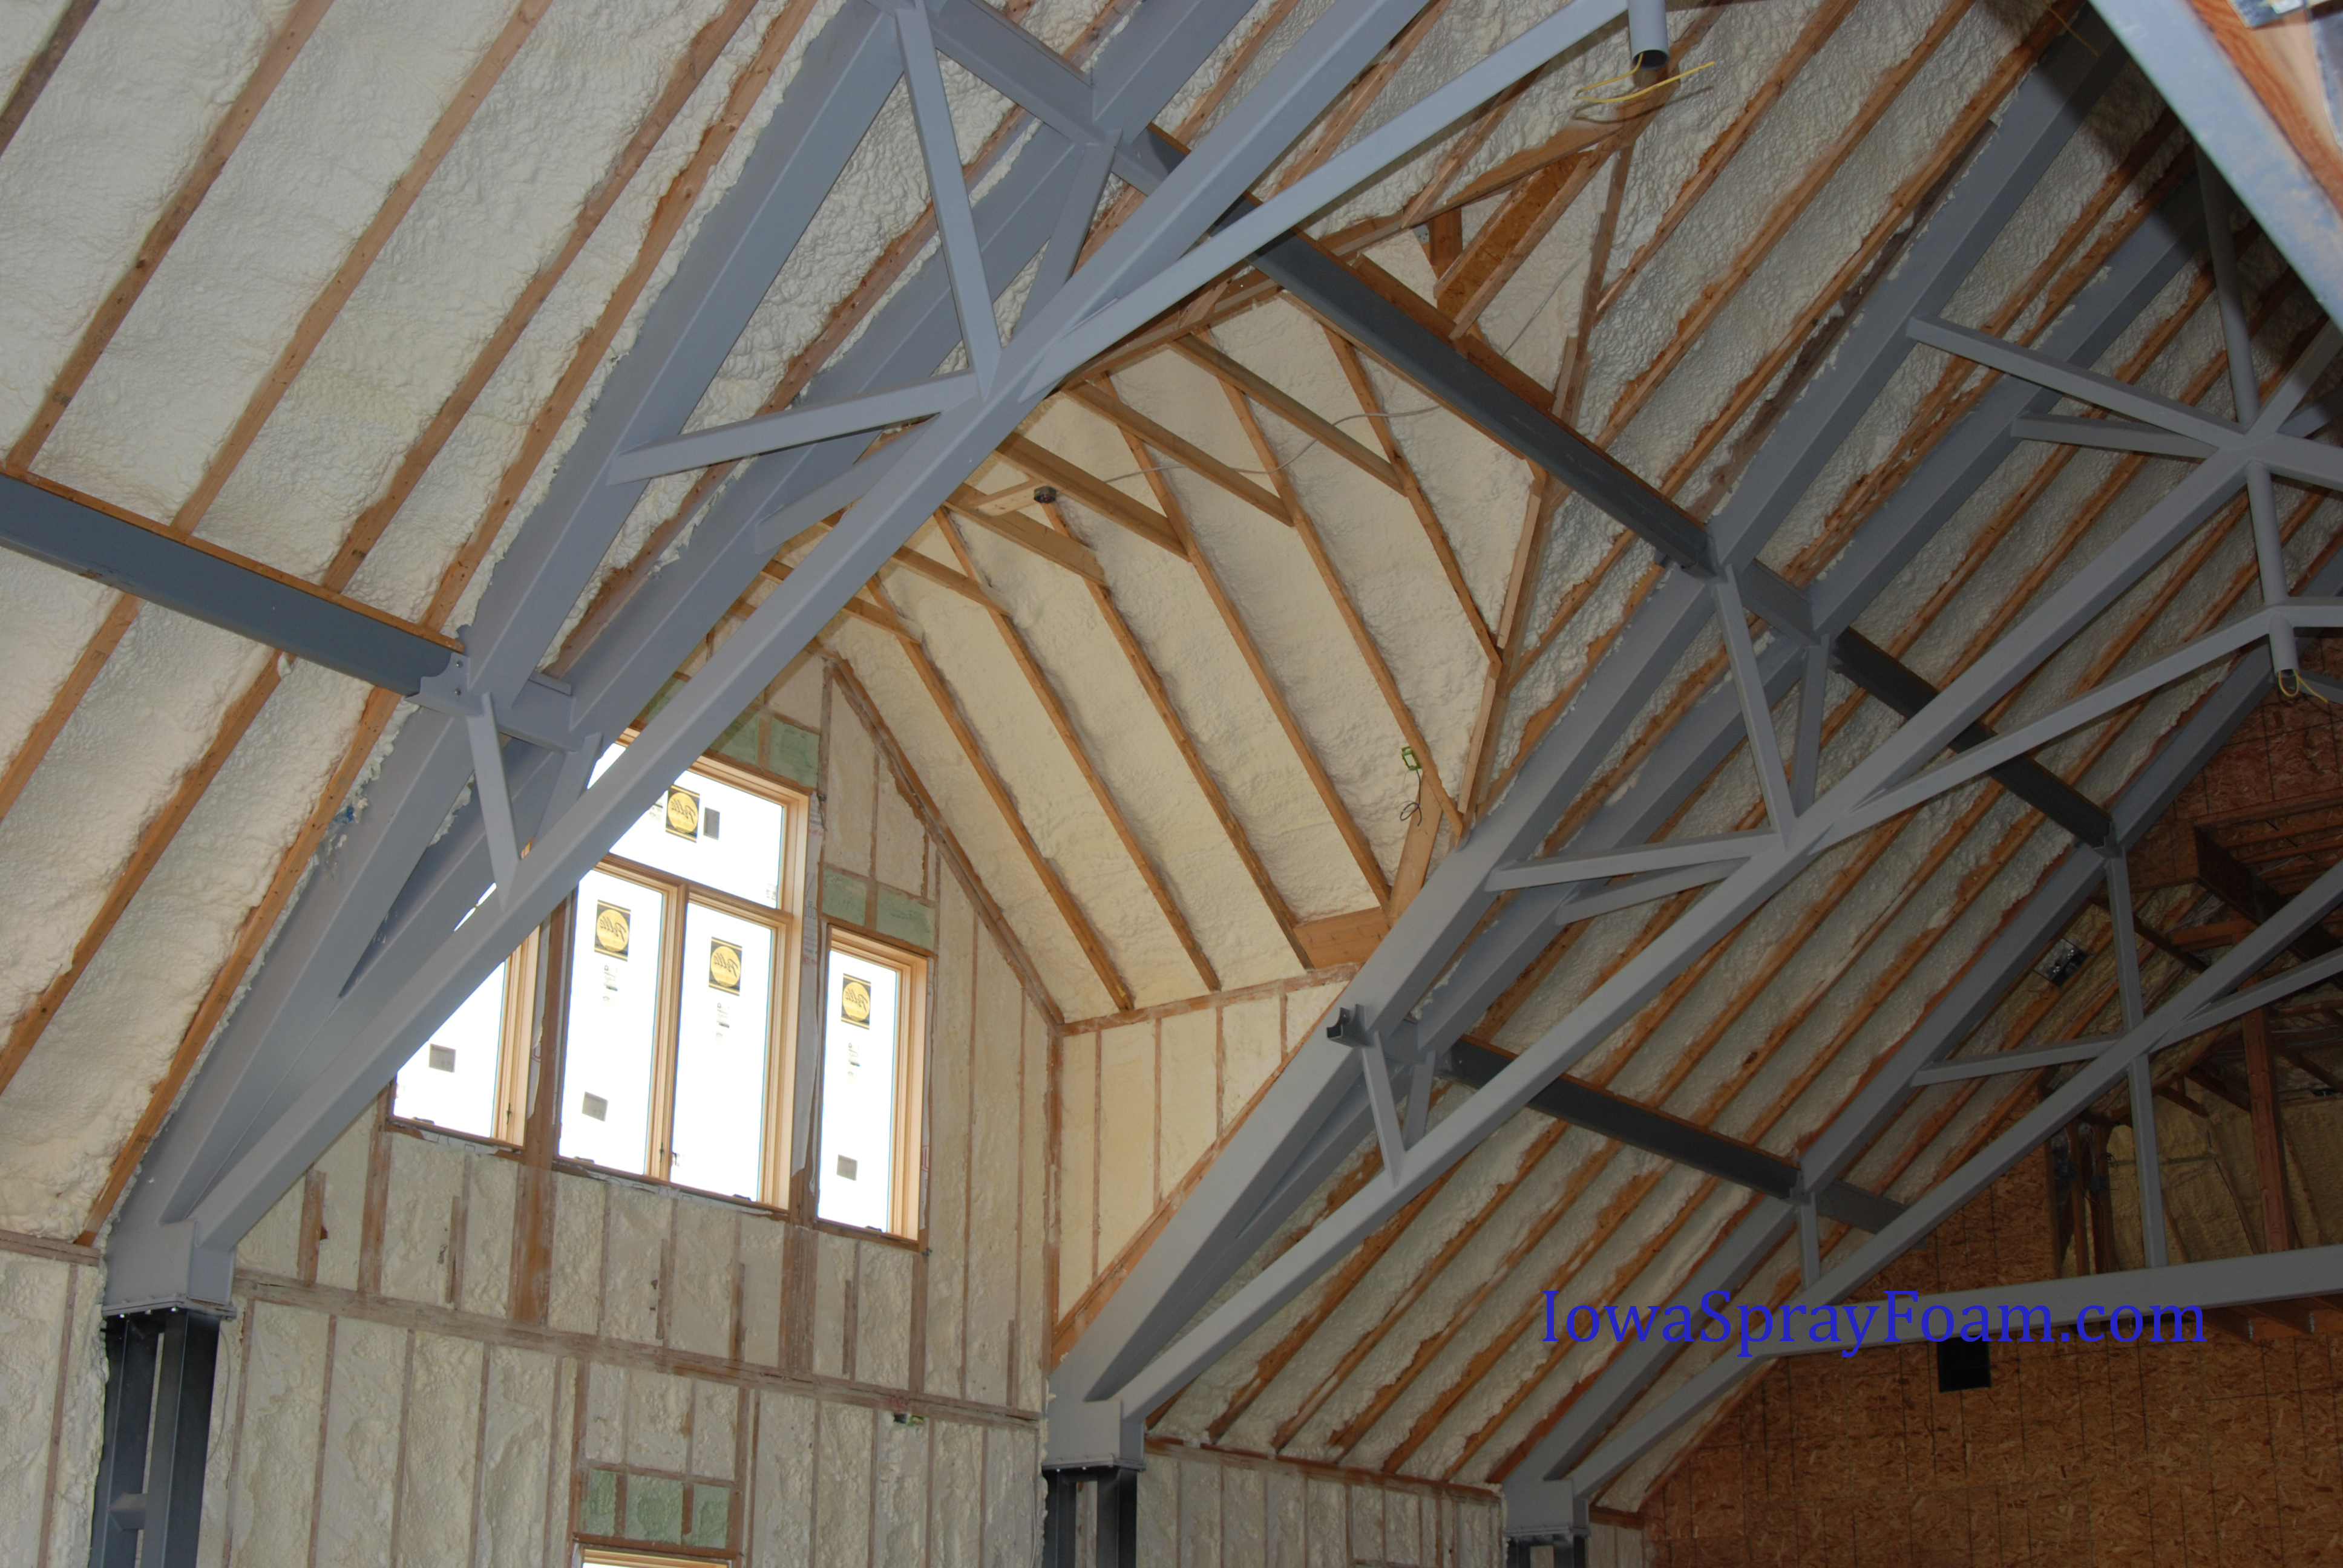 Spray Foam Insulation Audubon Ia Iowa Spray Foam Insulators throughout proportions 3872 X 2592